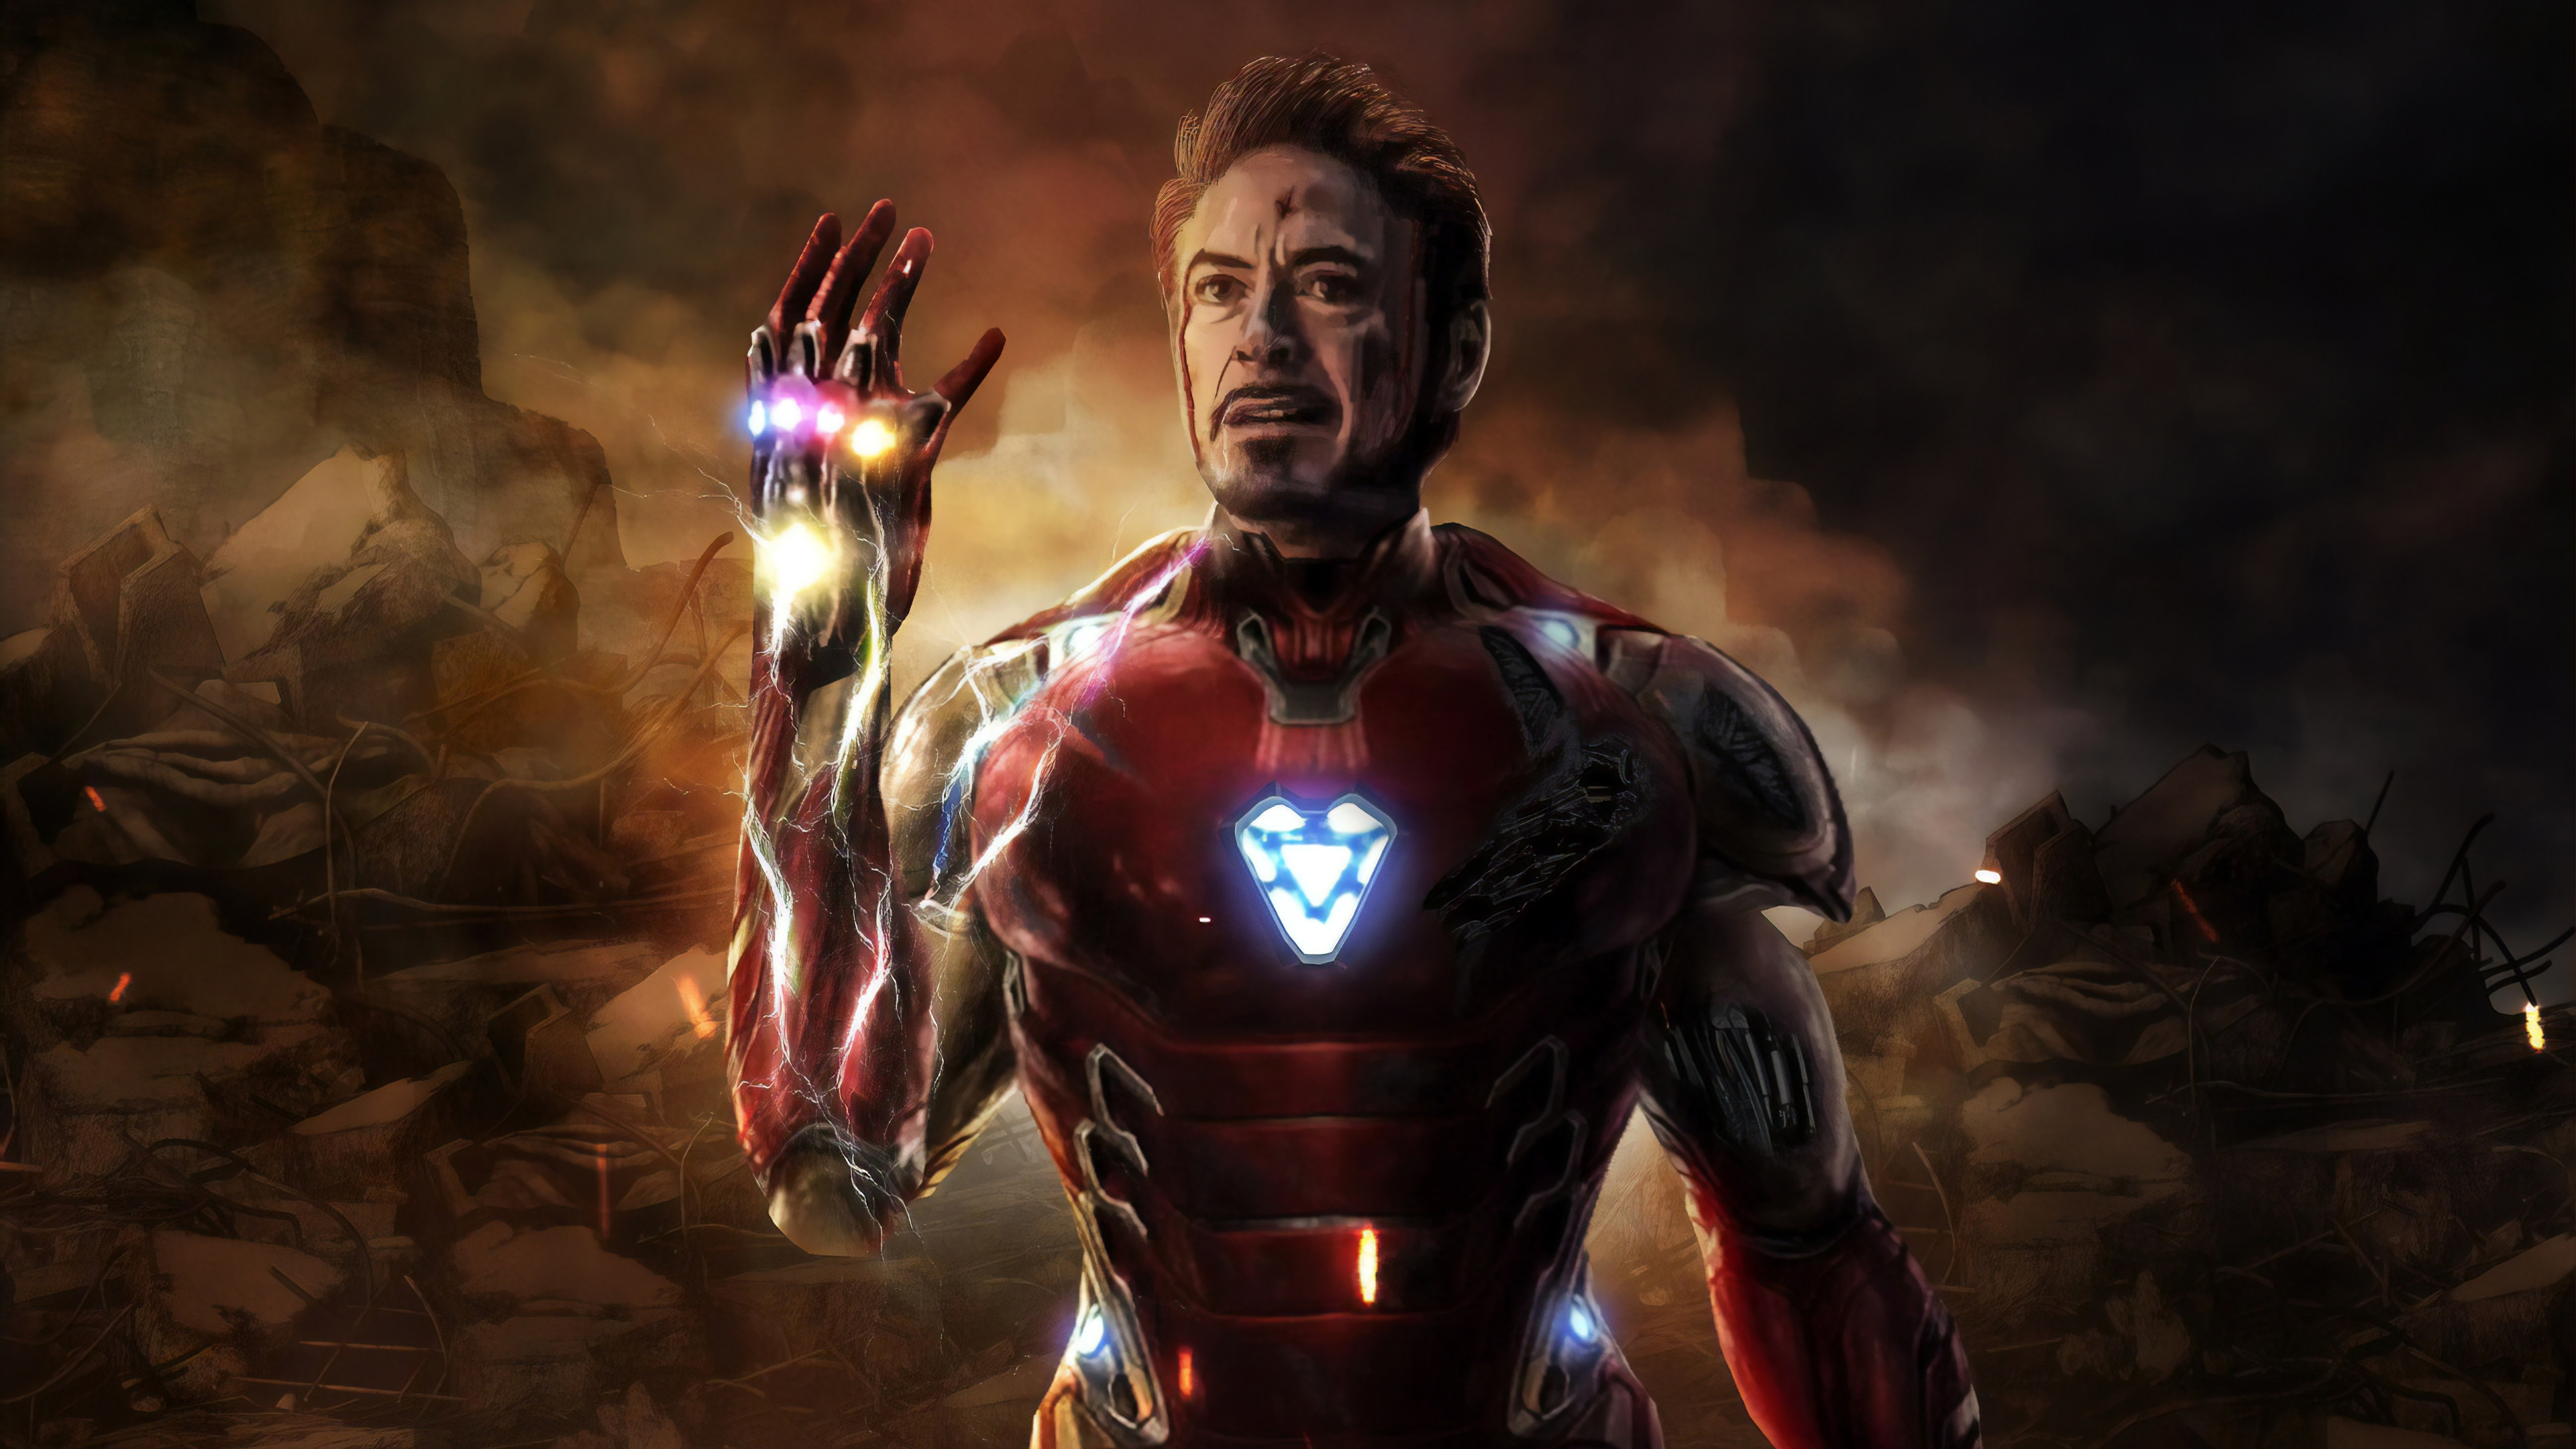 Avengers Endgame Iron Man Tony Stark Infinity Stones Wallpaper 8k Ultra Hd Id 3188